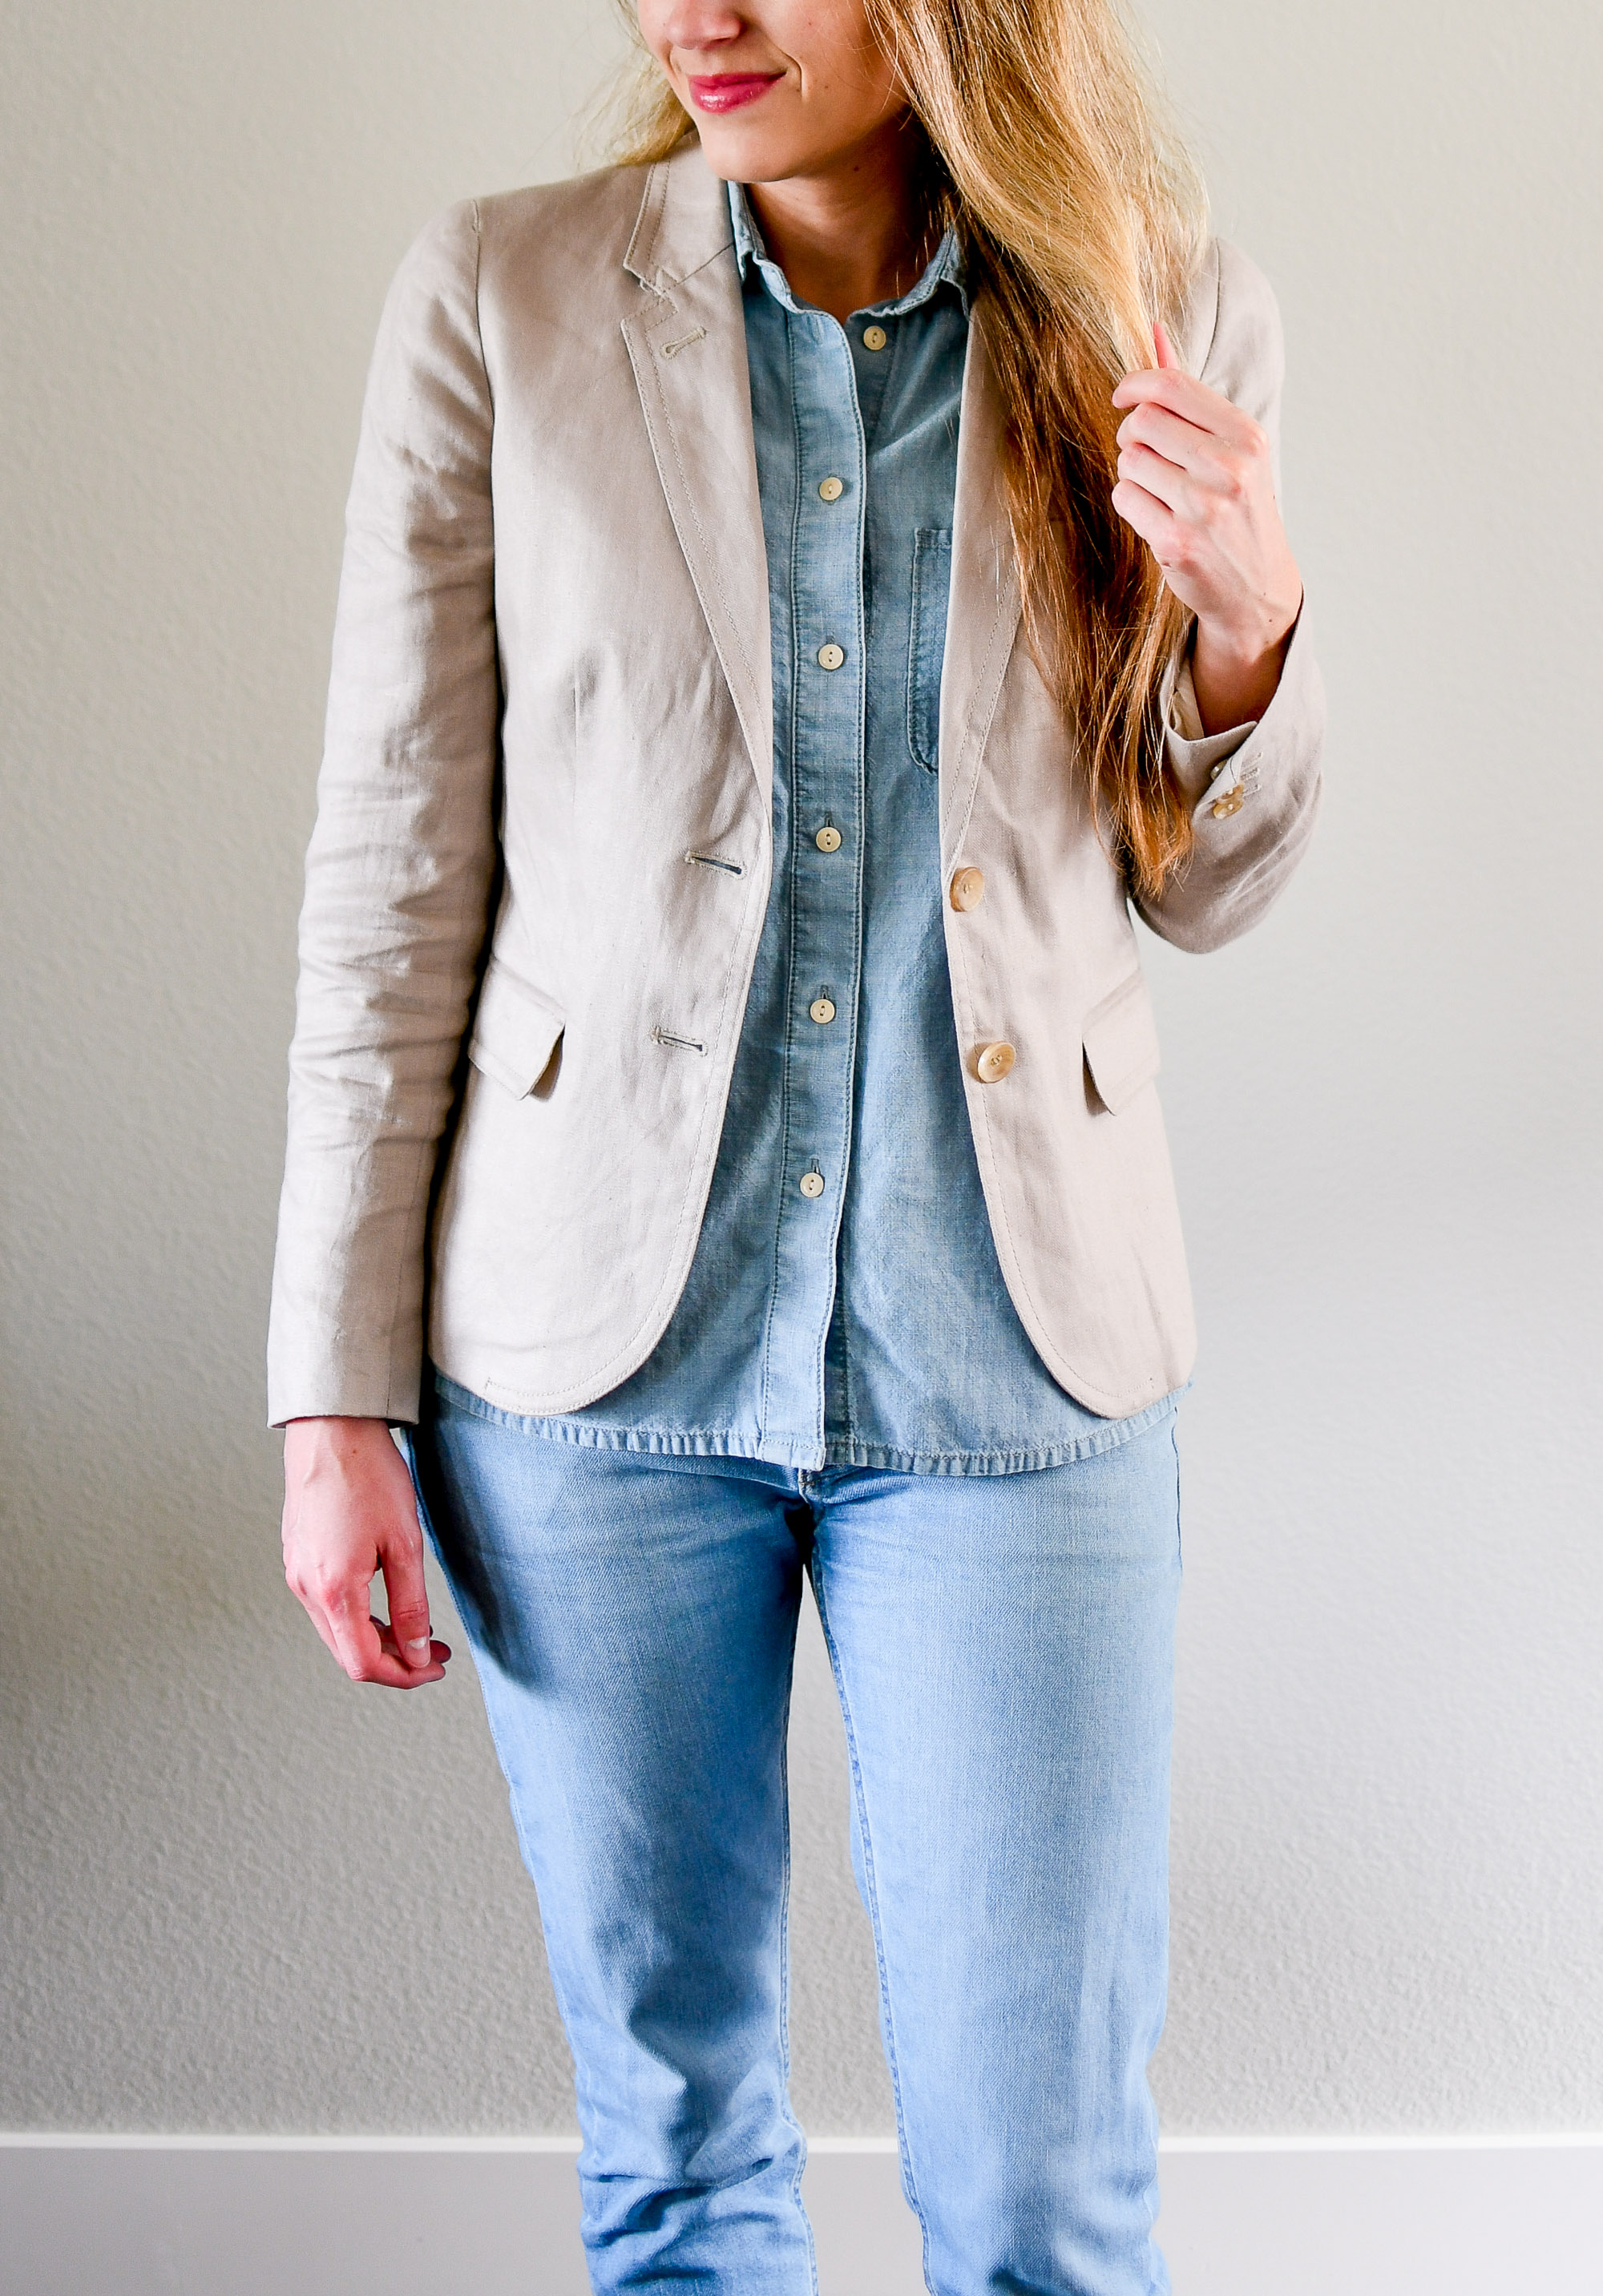 Linen blazer summer outfit with double denim — Cotton Cashmere Cat Hair